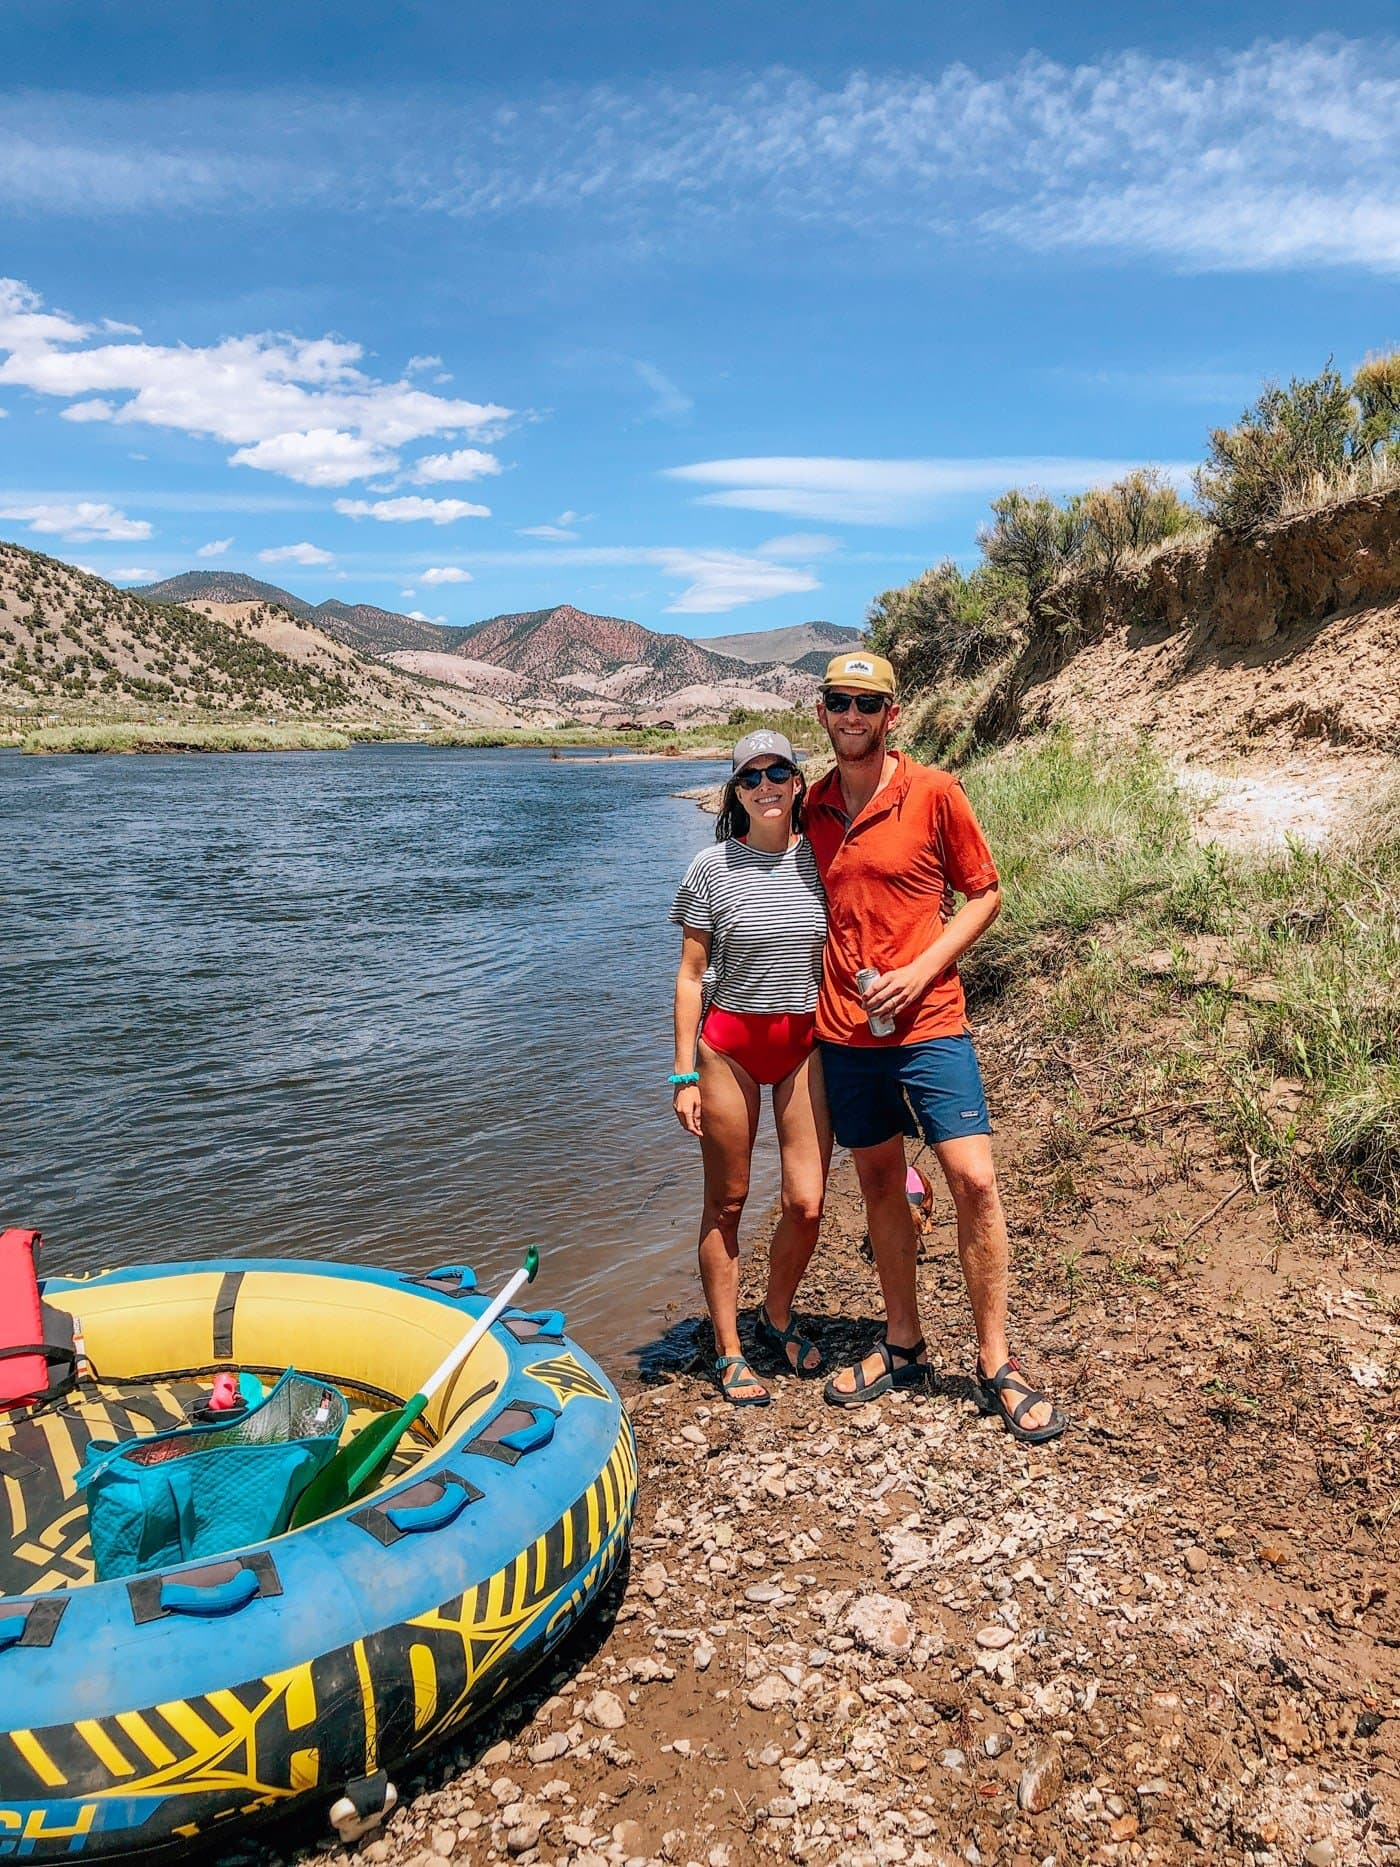 Turtle Tubing on the Colorado River